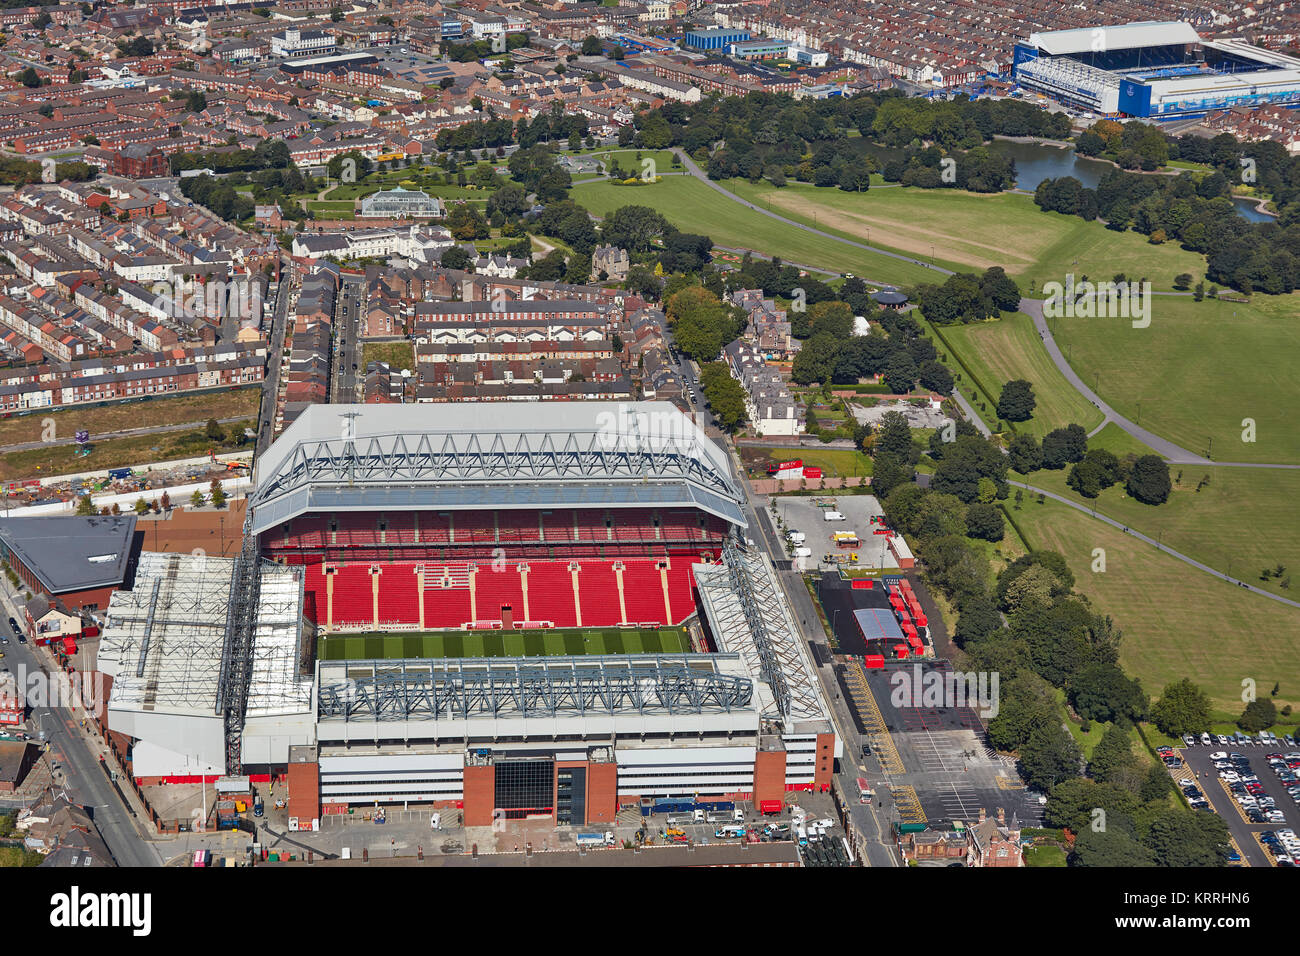 An aerial view of Liverpool showing Anfield in the foreground and Goodison Park in the background Stock Photo